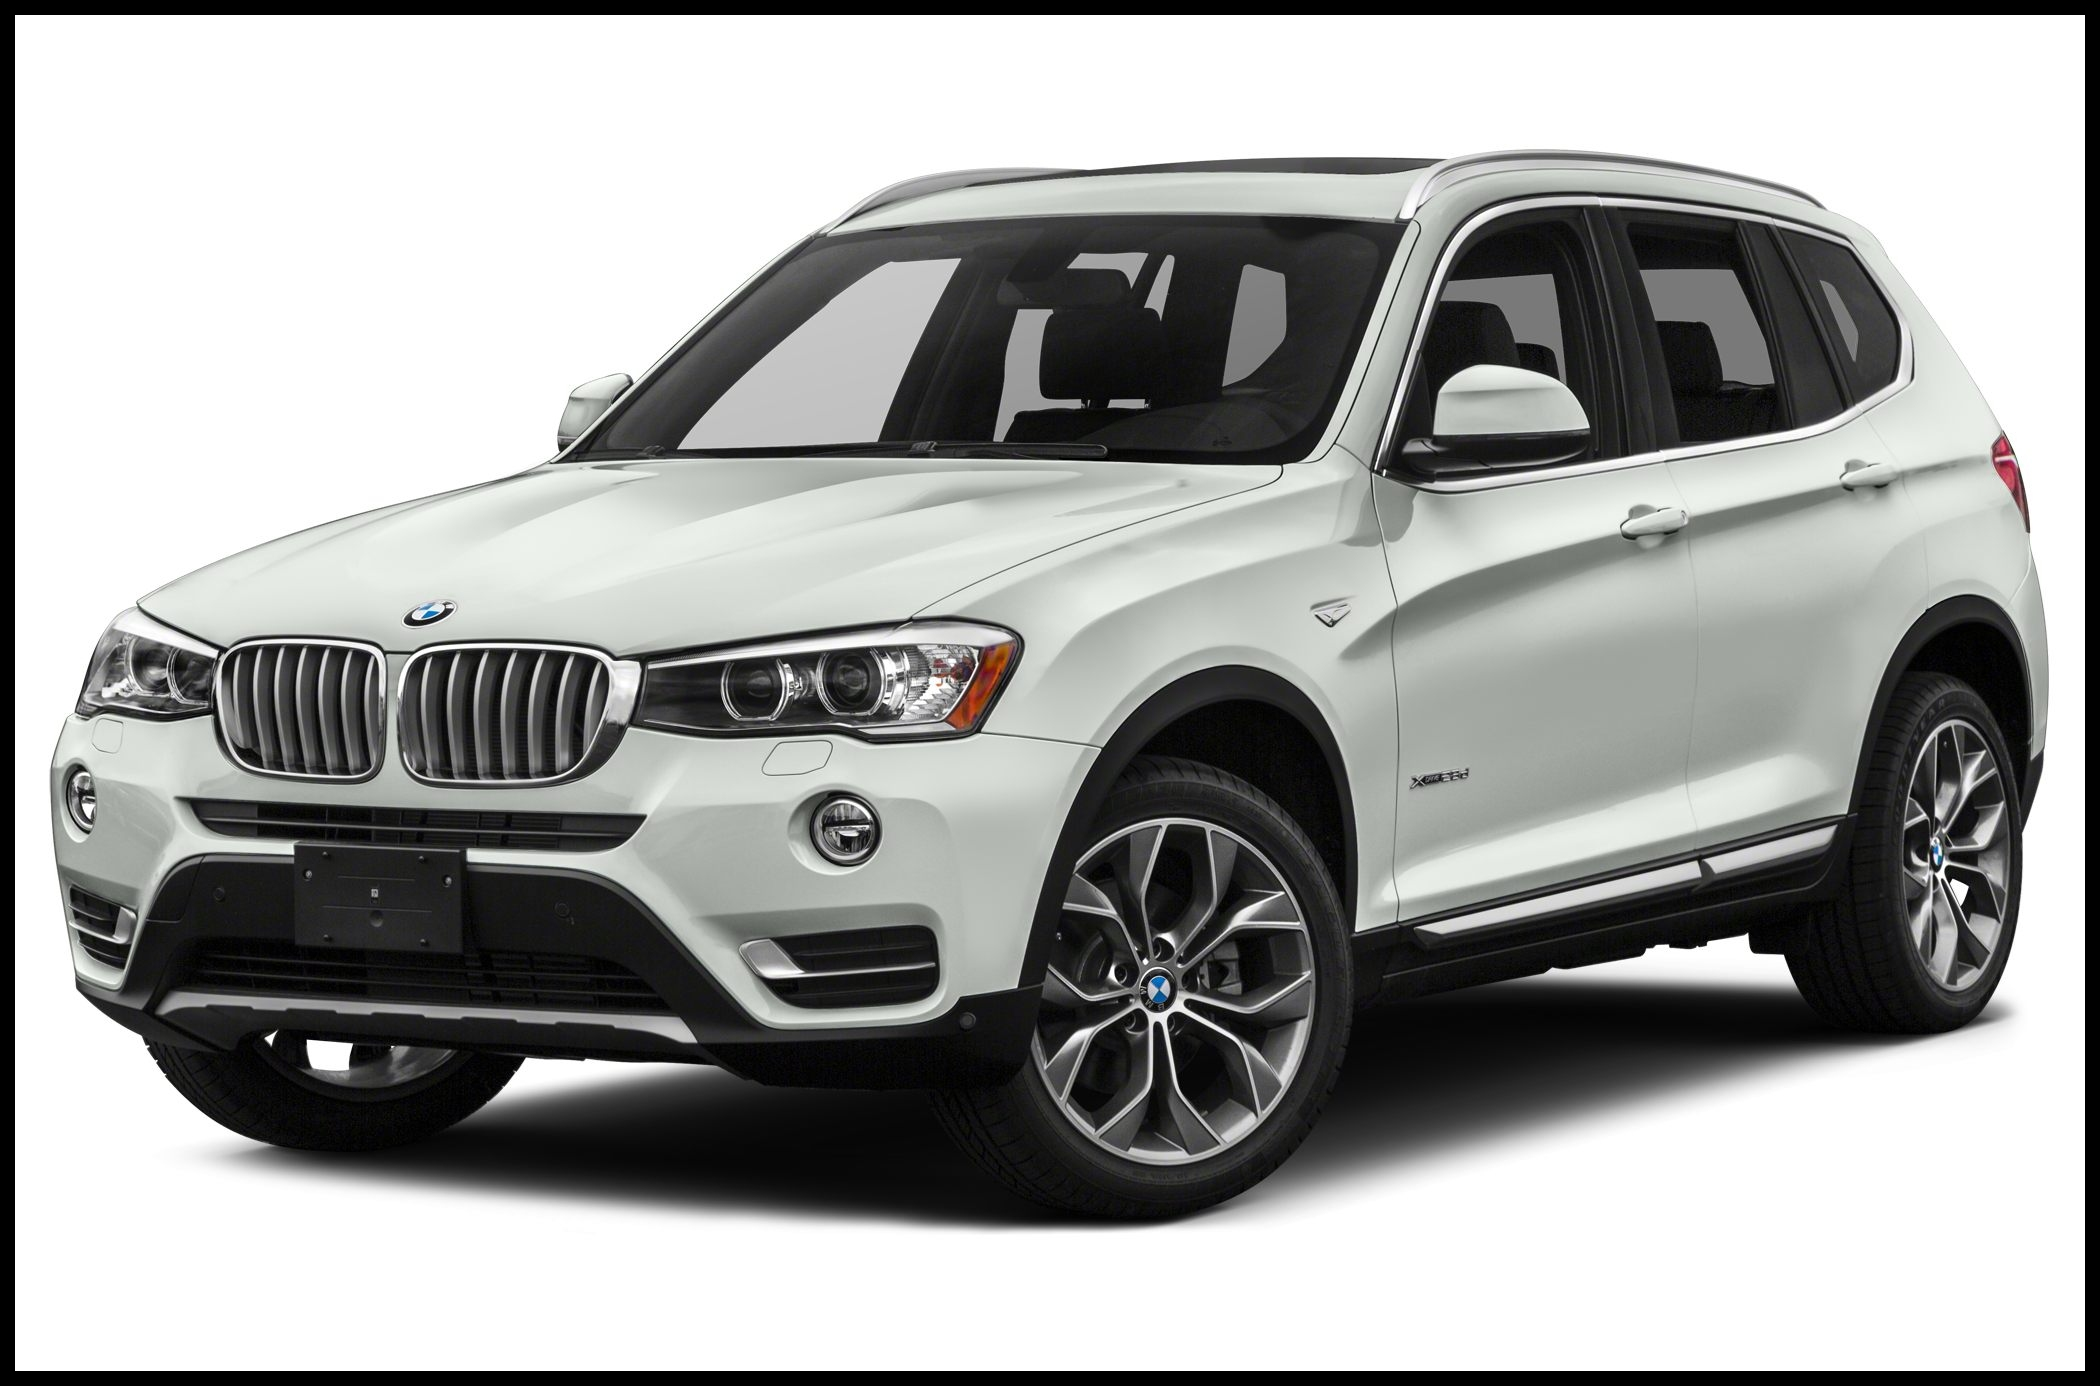 2017 BMW X3 xDrive28d 4dr All wheel Drive Sports Activity Vehicle Pricing and Options